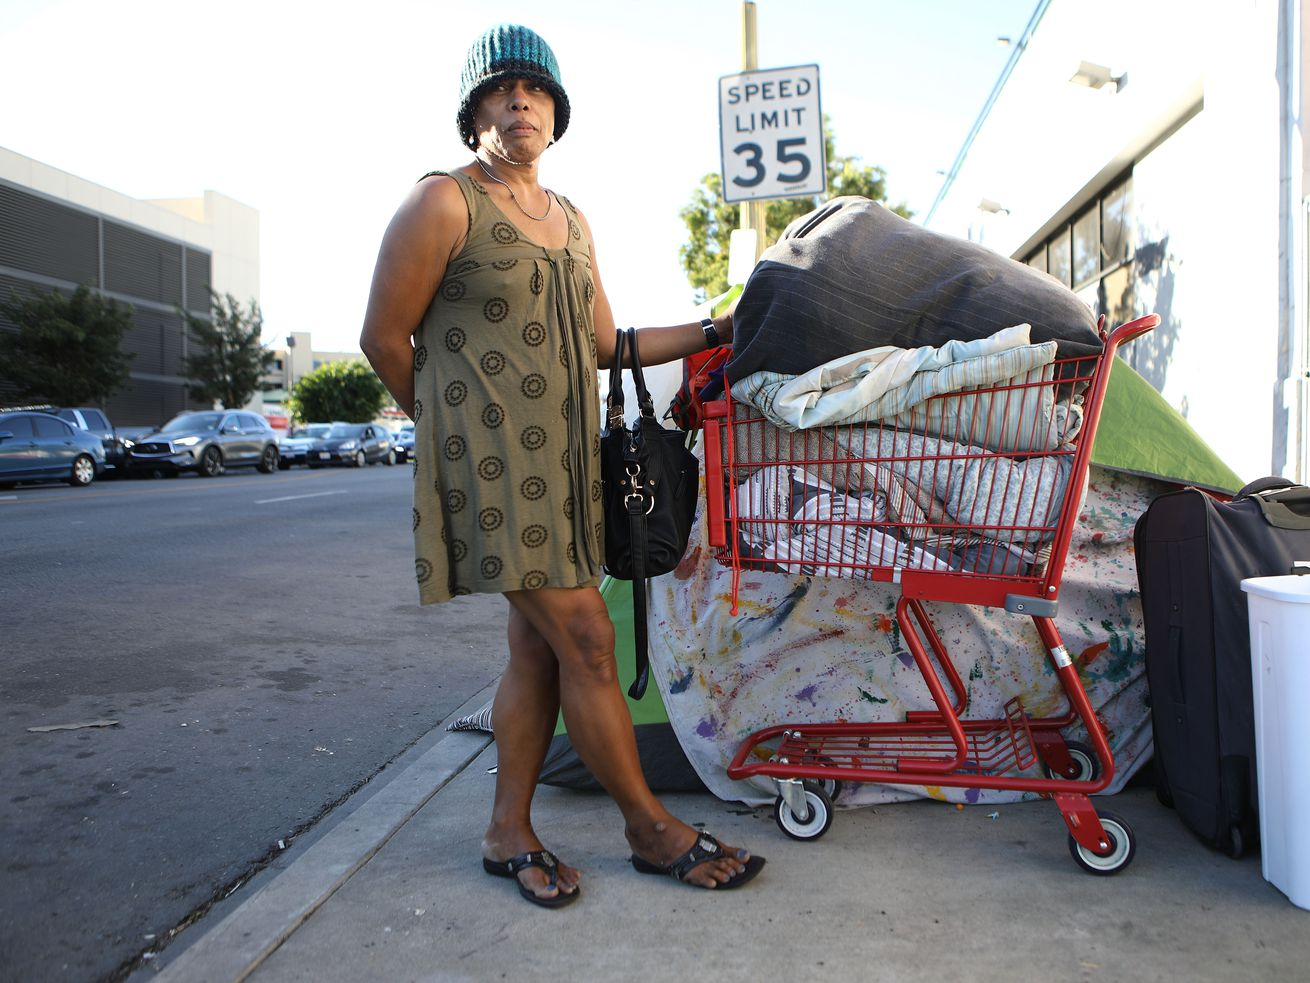 Los Angeles resident BriAnne, who is currently homeless, on November 2, 2018.